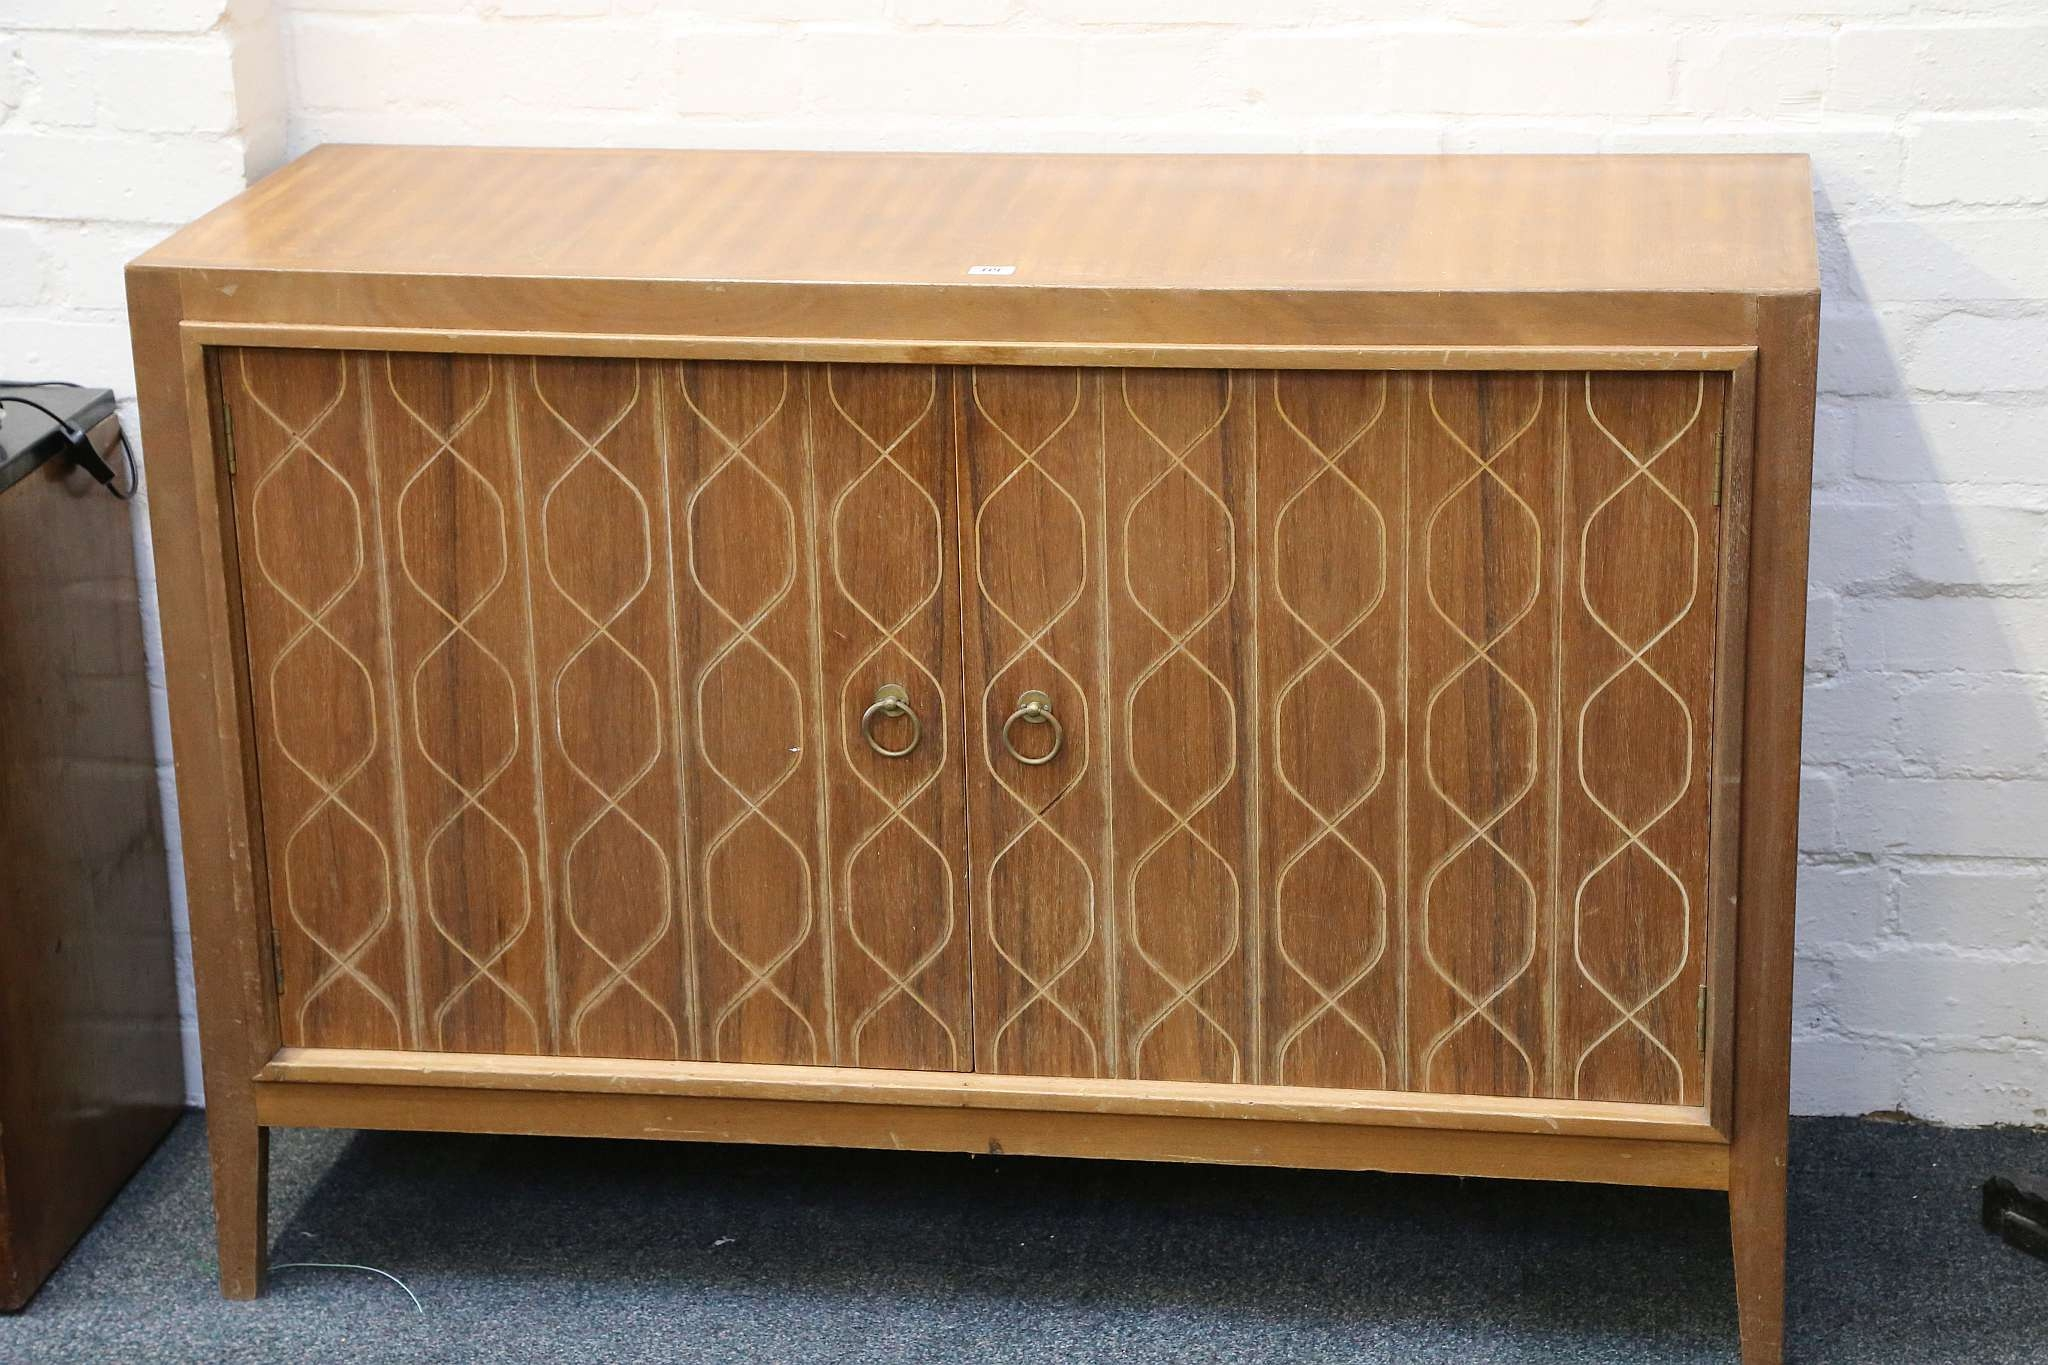 A 1950s Gordon Russell Teak Double Helix Sideboard, With Incised Pertaining To Gordon Russell Helix Sideboards (View 7 of 20)